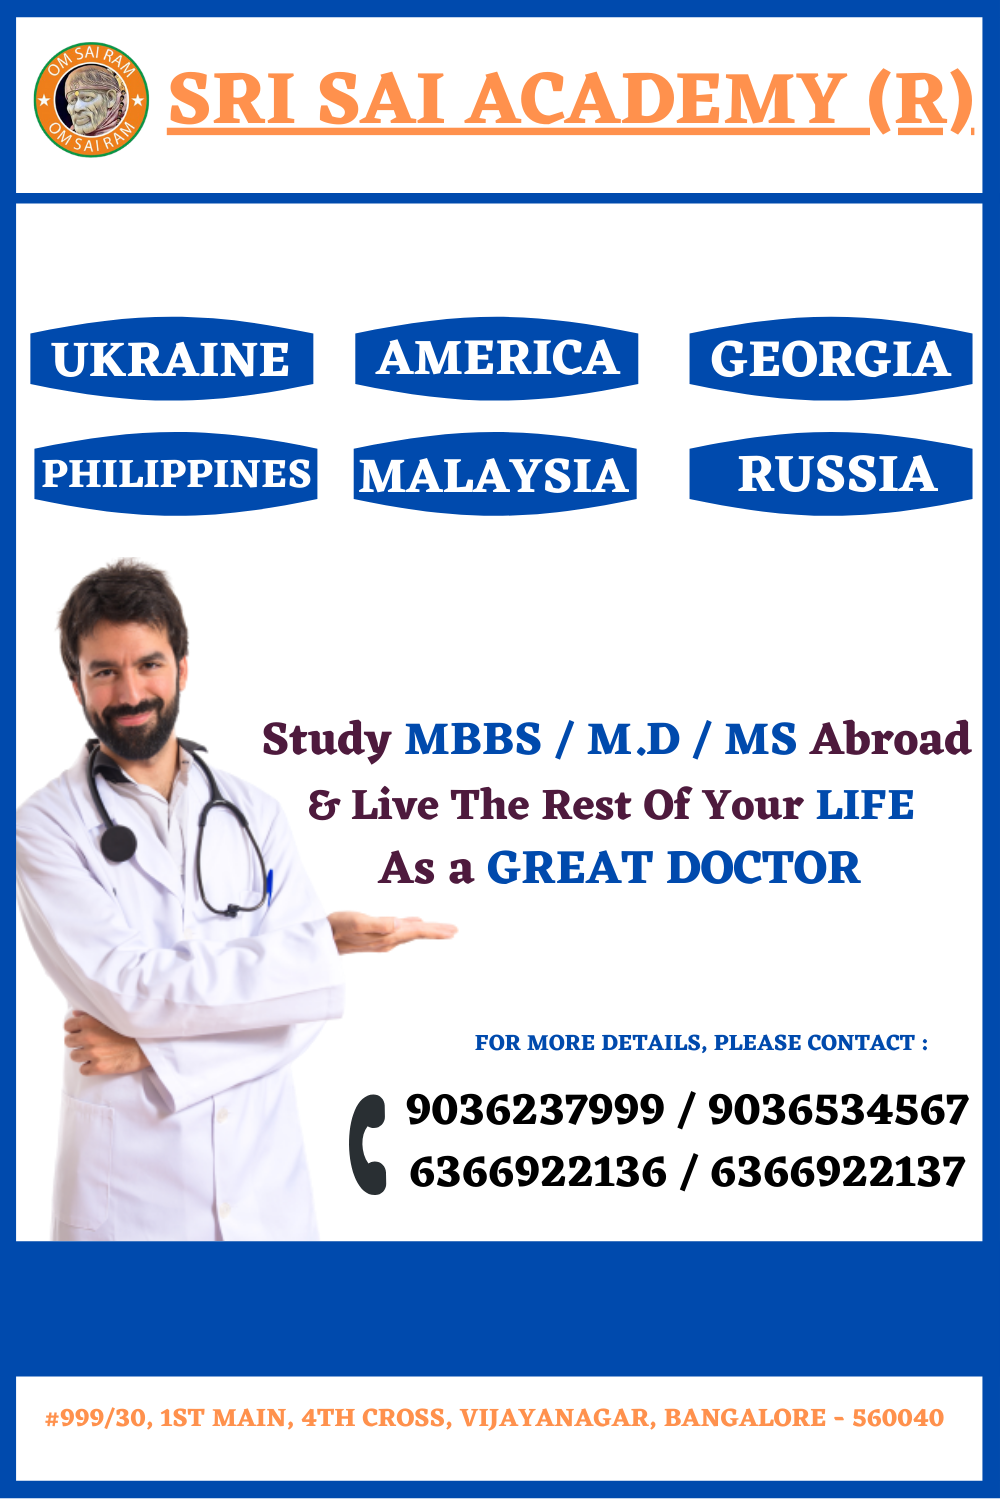 Admissions open for MBBS / MD / MS 202021 in 2020